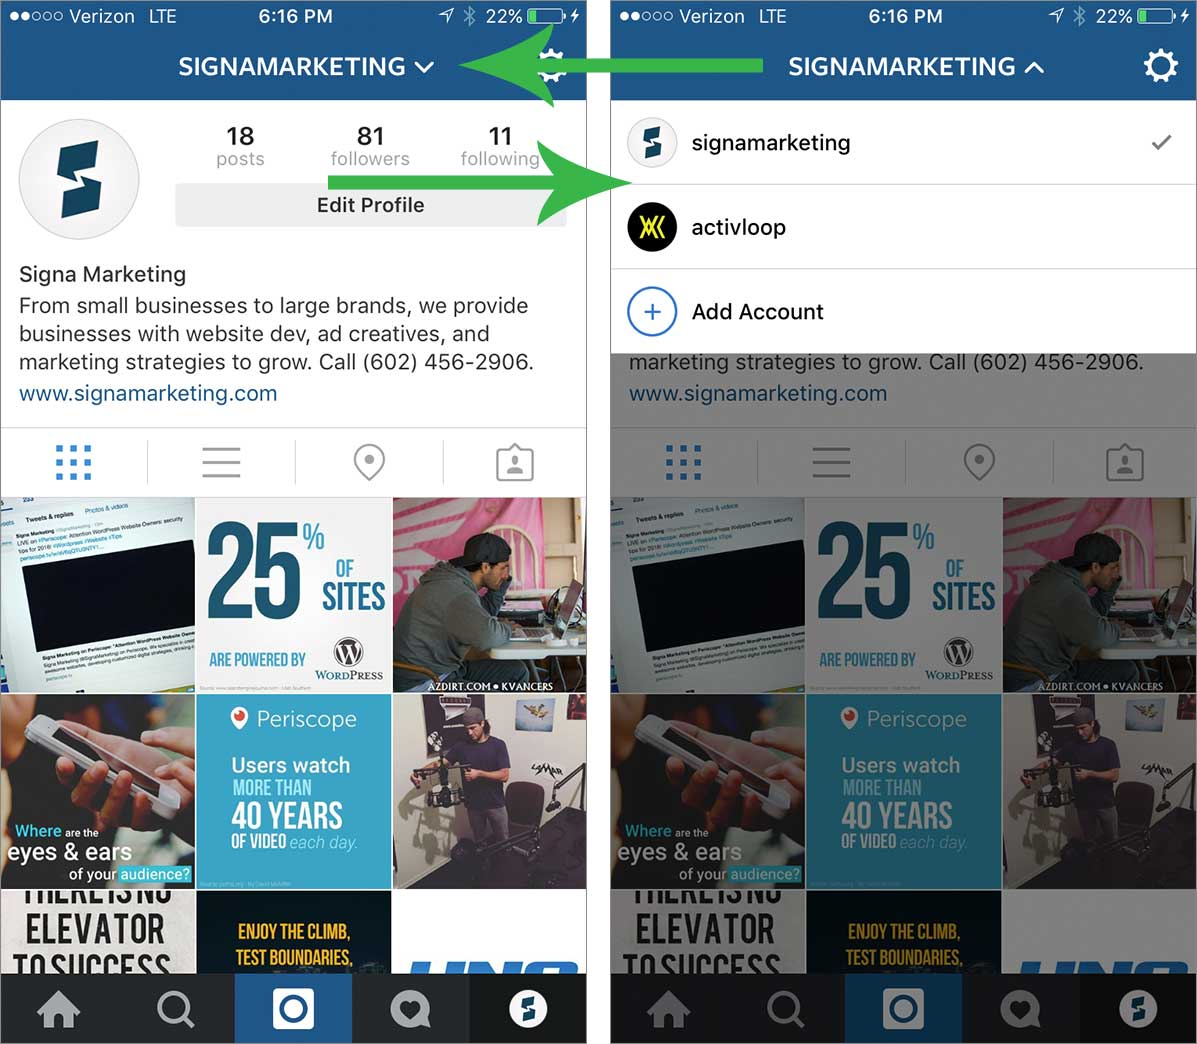 Signa Marketing Instagram Account